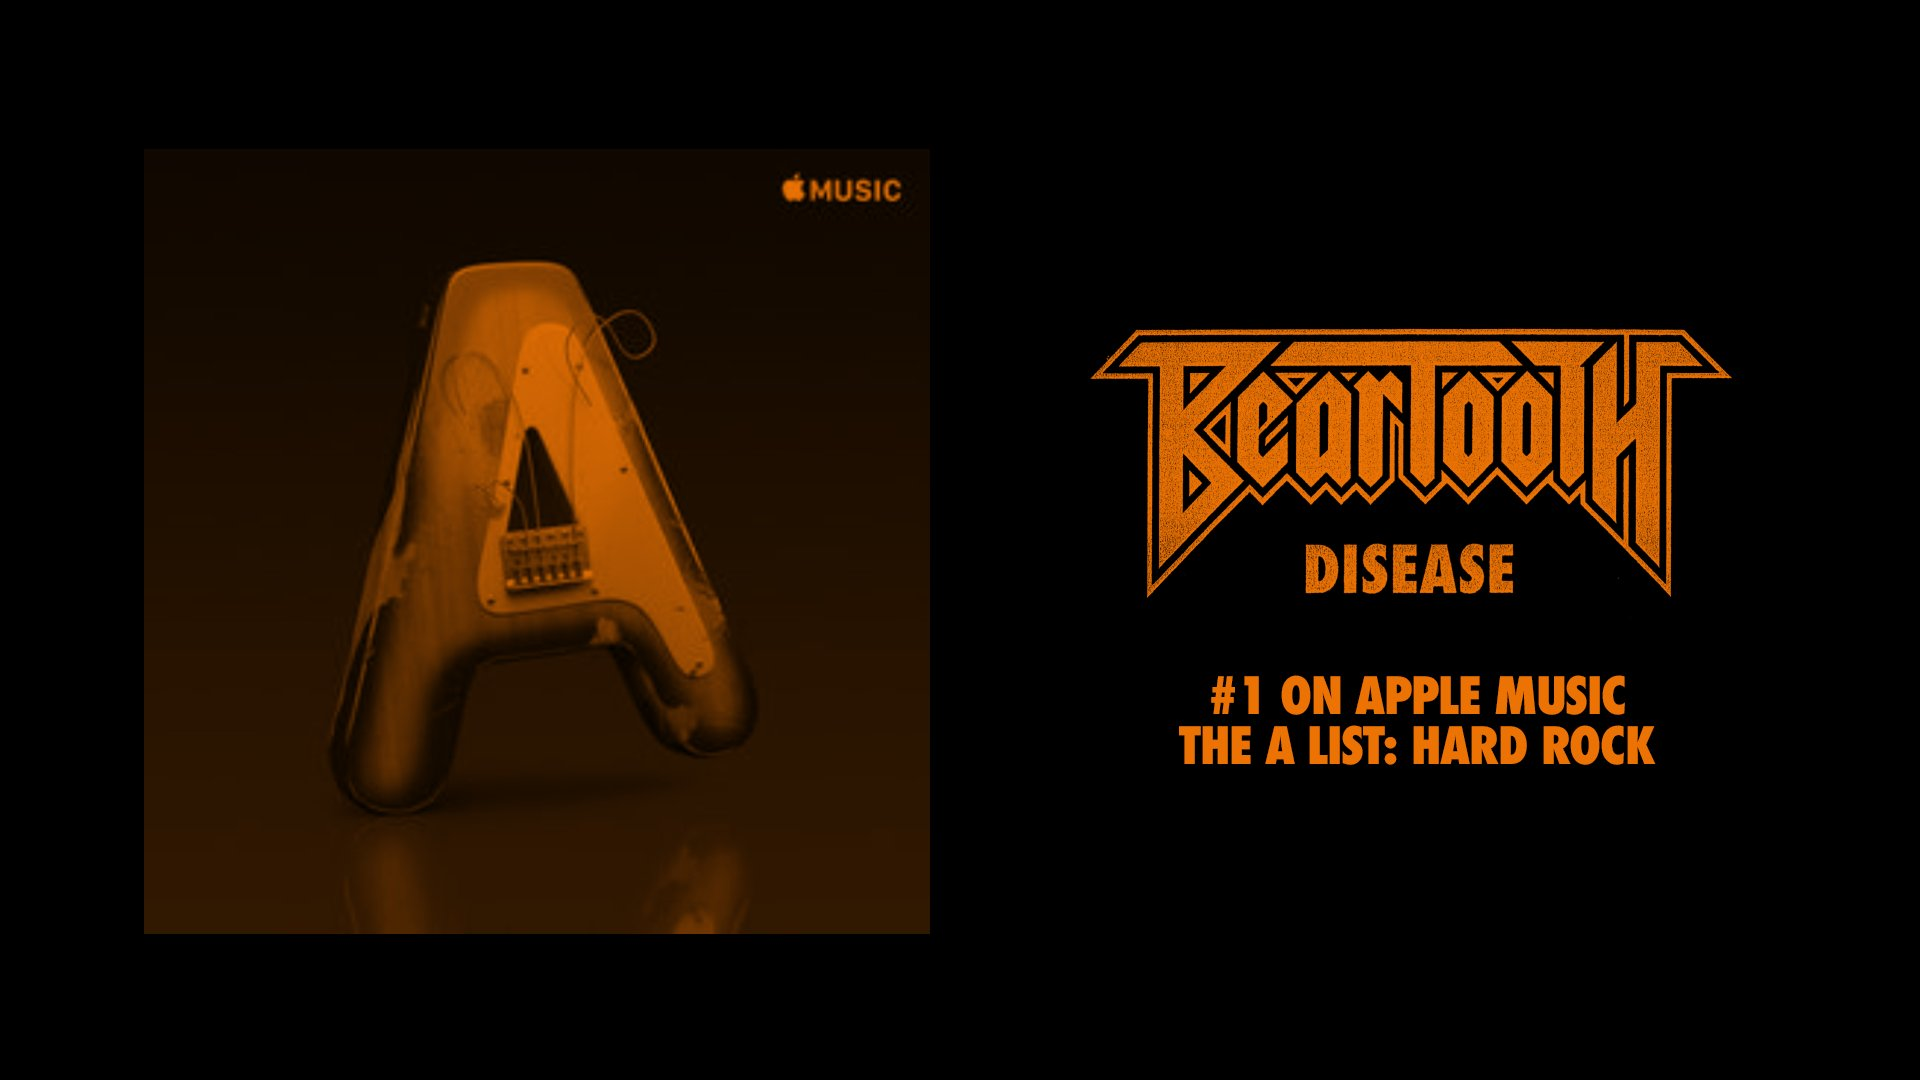 Head over to @Applemusic to stream 'Disease' on The A-List: Hard Rock playlist!  ��: https://t.co/BFKMVymBTS https://t.co/sUL4gB7Ji6